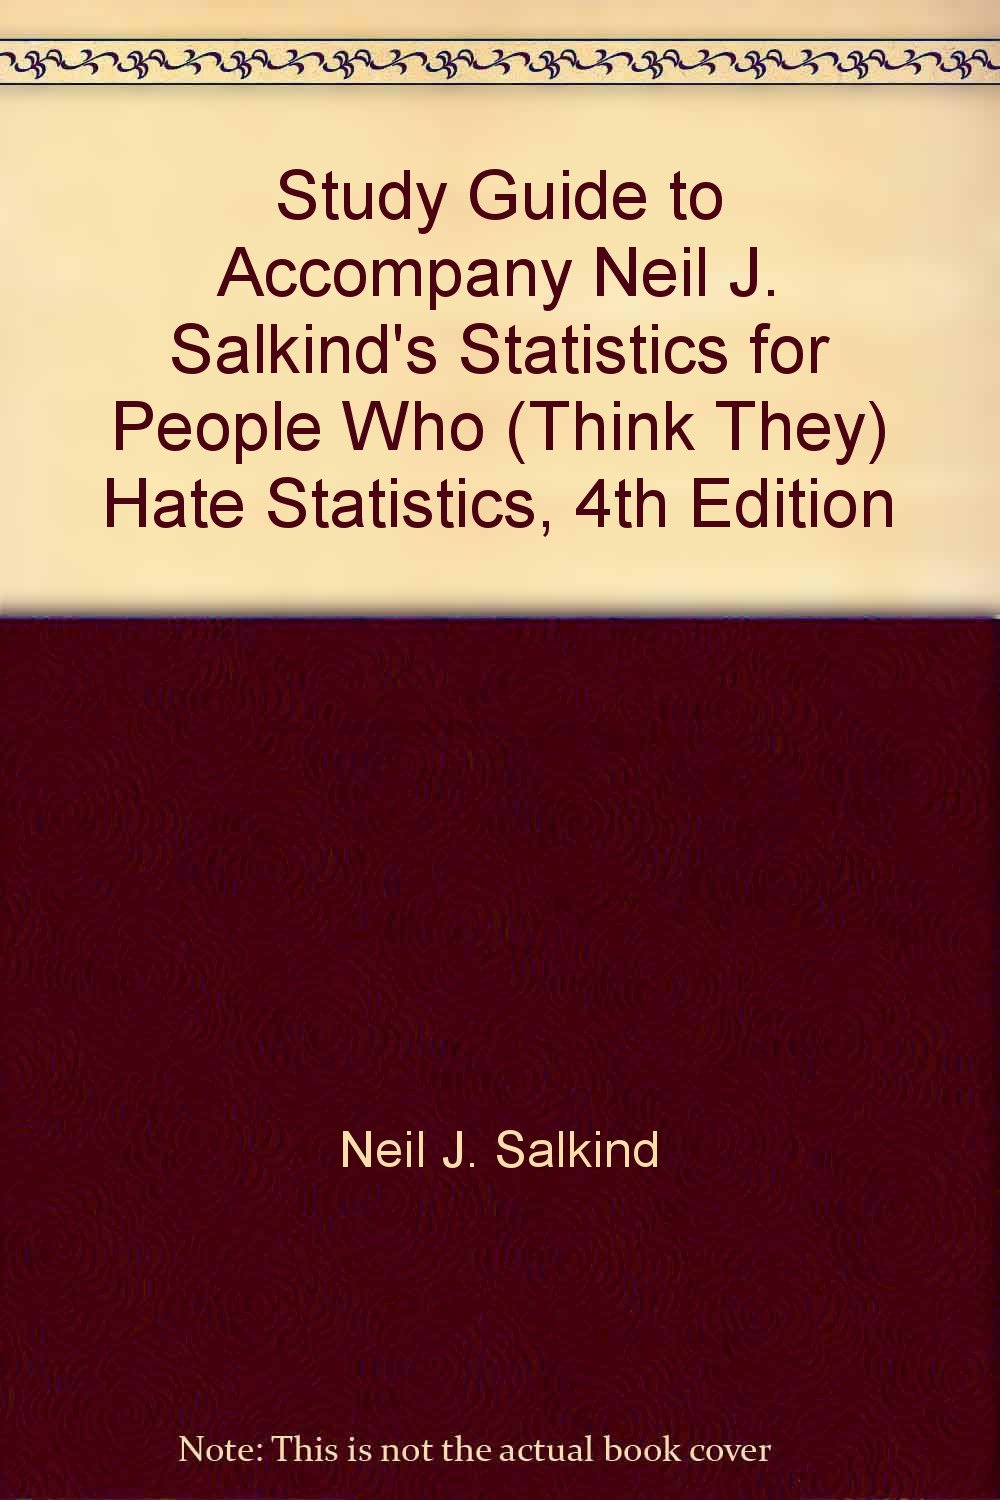 Download Study Guide to Accompany Neil J. Salkind's Statistics for People Who (Think They) Hate Statistics, 4th Edition PDF